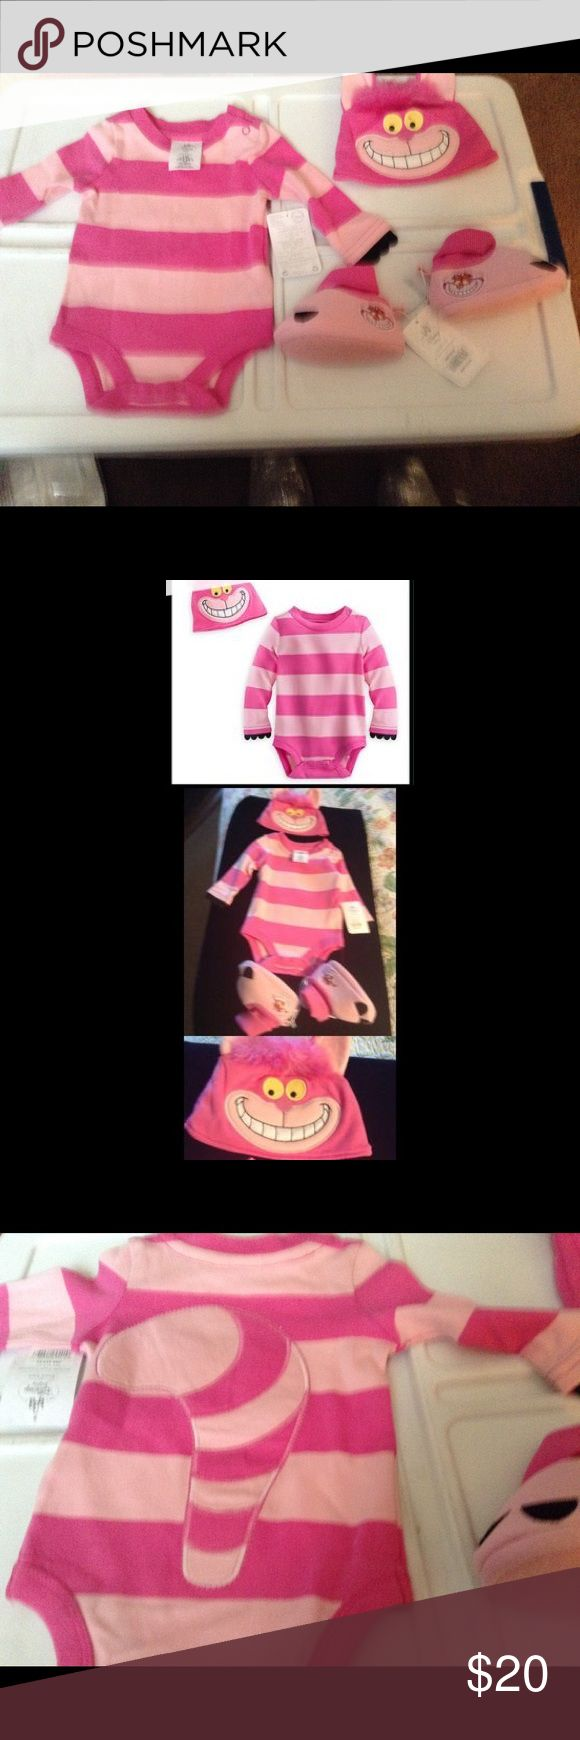 Halloween NWT Alice Cheshire Cat Costume &shoes 3m Disney StoreAuthentic! NWT Alice in Wonderland Cheshire Cat Baby Costume   & shoes Sz 0-3 months  $35  * Includes striped bodysuit •Embroidered Cheshire Cat features * Soft 3-D ears * Faux fur hair  * Embroidered tail on bodysuit back * Elastic neck and cuff * Two snaps at neck * Single row of snaps at leg  * Felt paws attached at sleeve *  Cheshire Cat Costume Shoes Baby never got to wear it from a smoke and pet free home  *   * Disney…